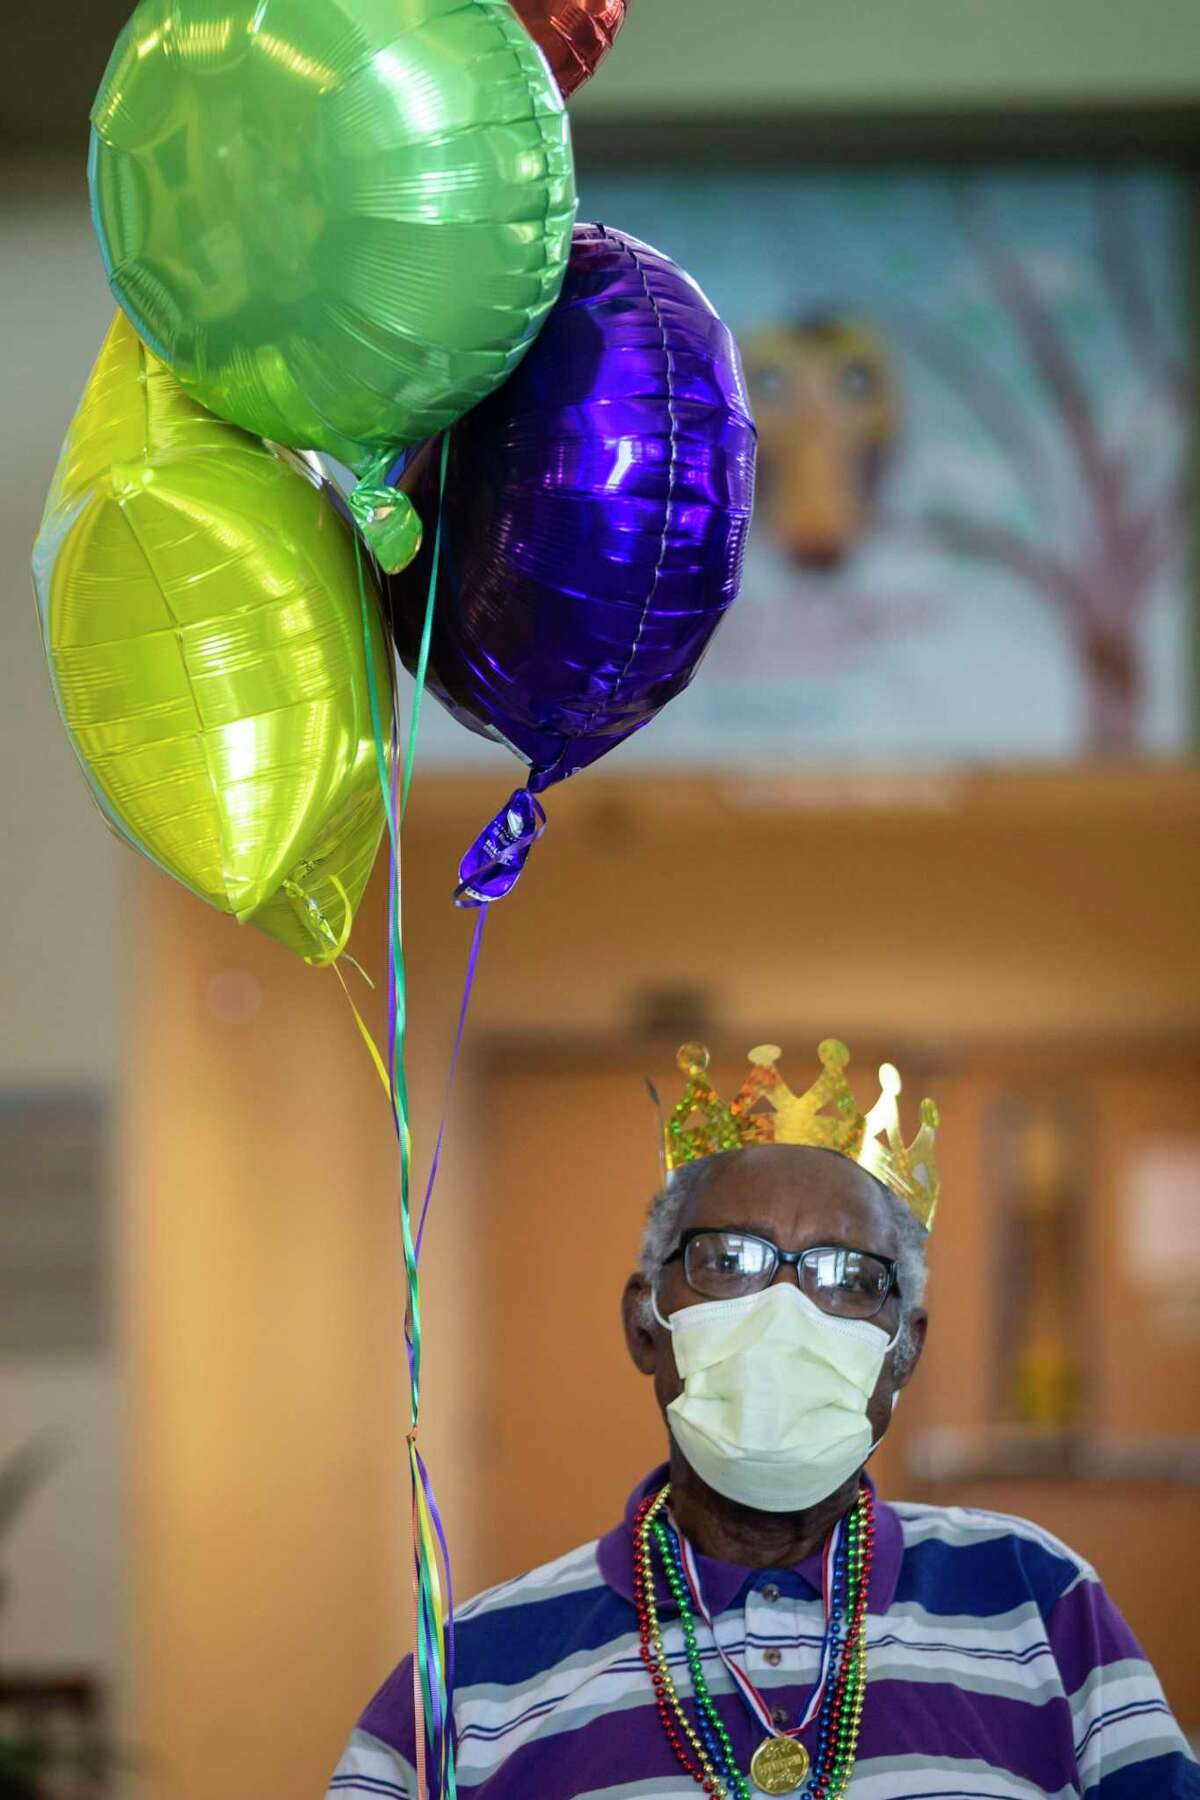 Allee Wallace, 85, holds balloons and sports a crown as he's discharged from a long-term acute care hospital.